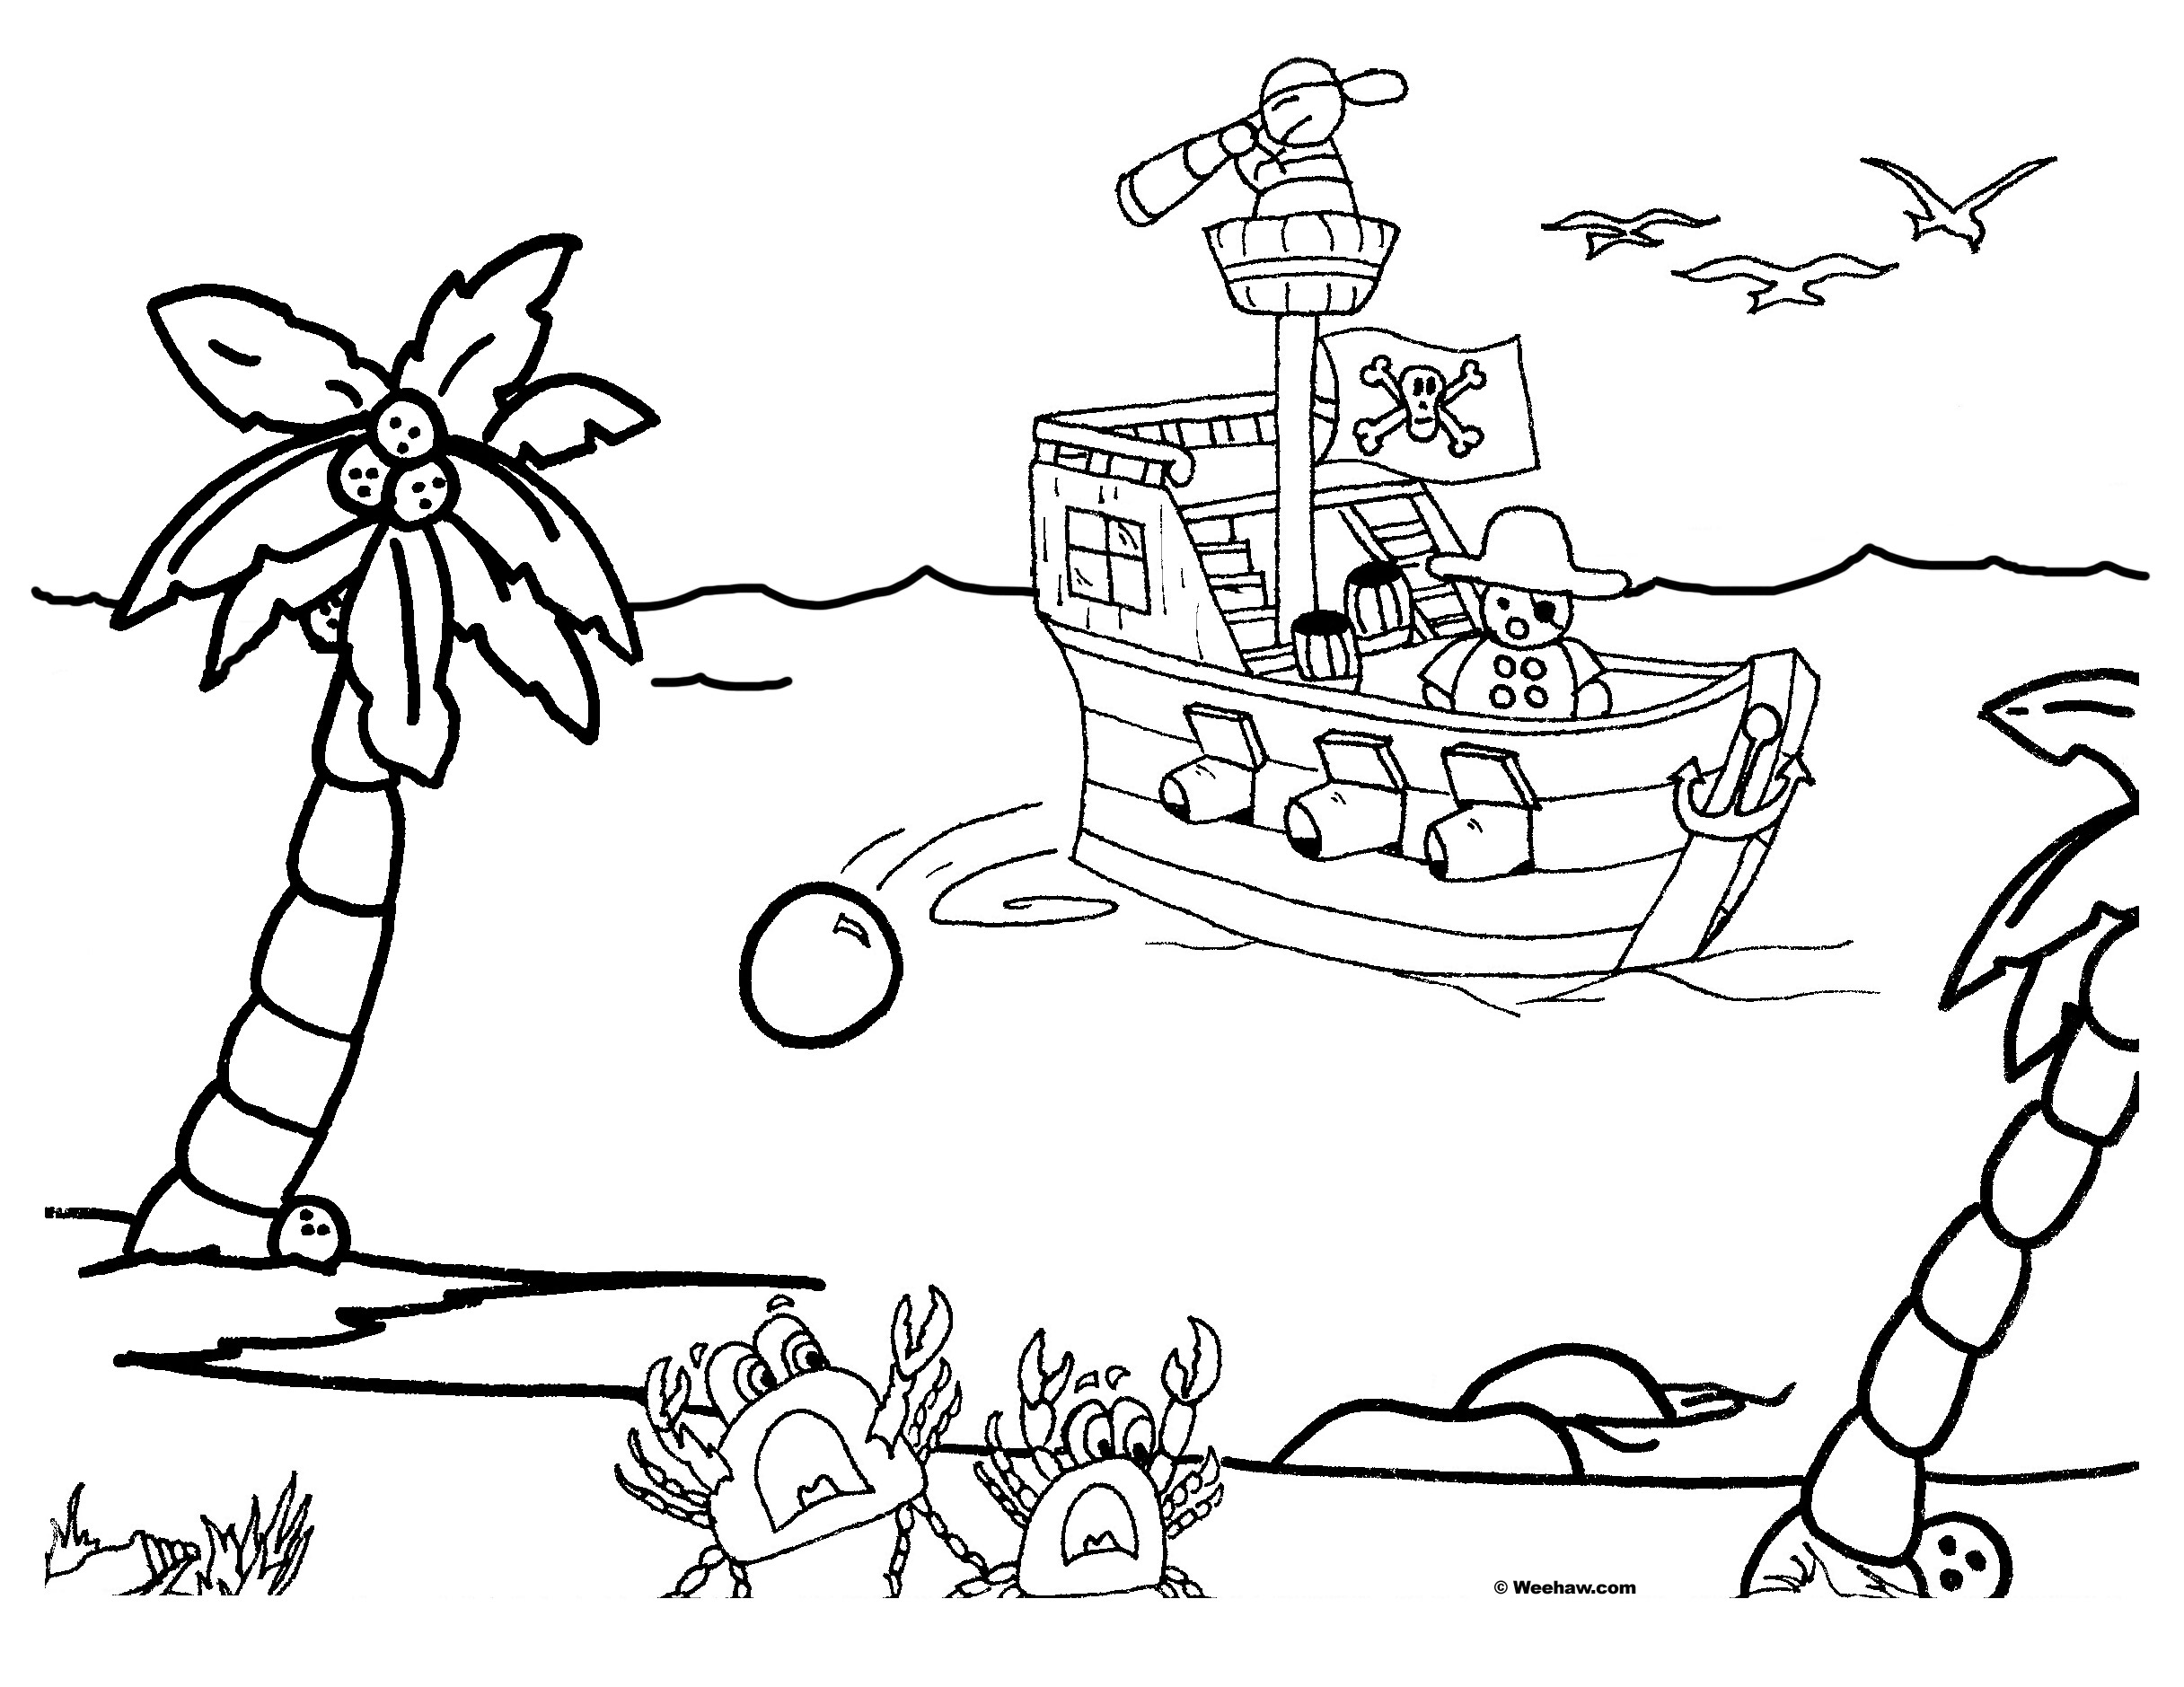 Free Pirate Coloring Pages At Getdrawings Com Free For Personal